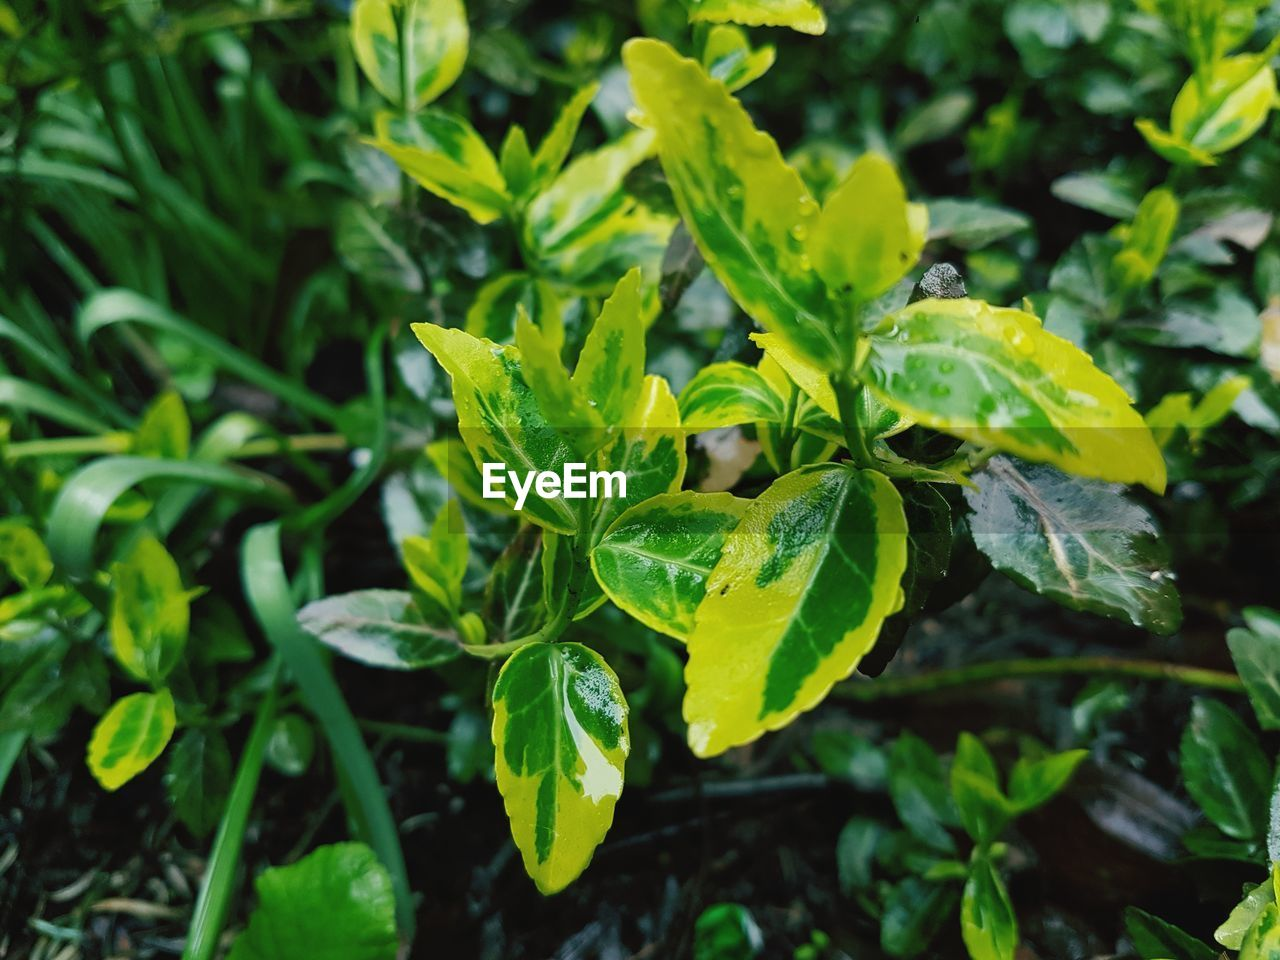 growth, green color, plant, leaf, plant part, beauty in nature, close-up, nature, day, no people, freshness, focus on foreground, fragility, outdoors, vulnerability, high angle view, selective focus, tranquility, land, field